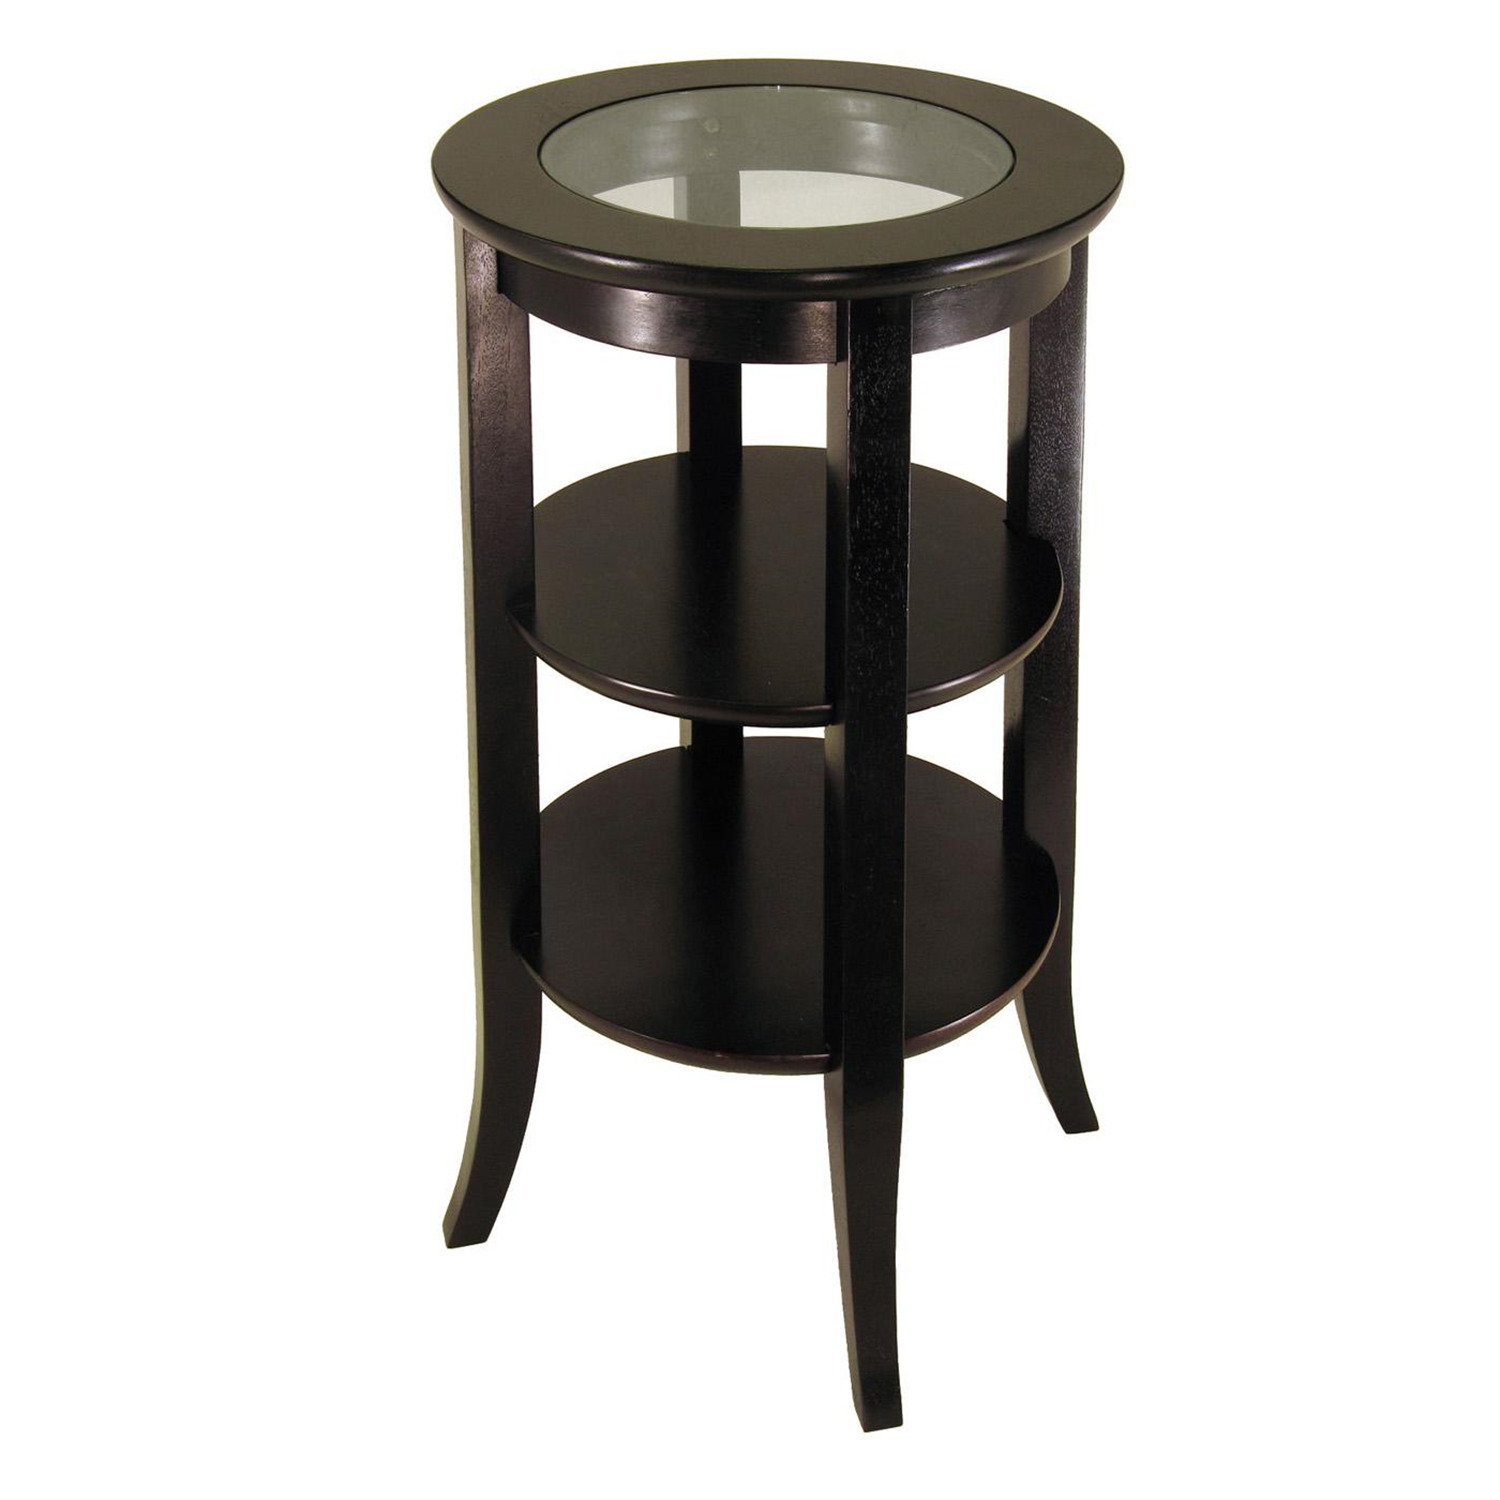 Winsome Genoa Accent Table, Inset Glass, Two Shelves By Oj. The Living Room Cafe St Ives Menu. Online Living Room Furniture Shopping India. Living Room Lcd Wall Design. Living Room Fireplace Makeover. Remodel Living Room Before And After. Cheap Homemade Living Room Decor. Baby Toy Storage Living Room. Living Room As Per Vaastu